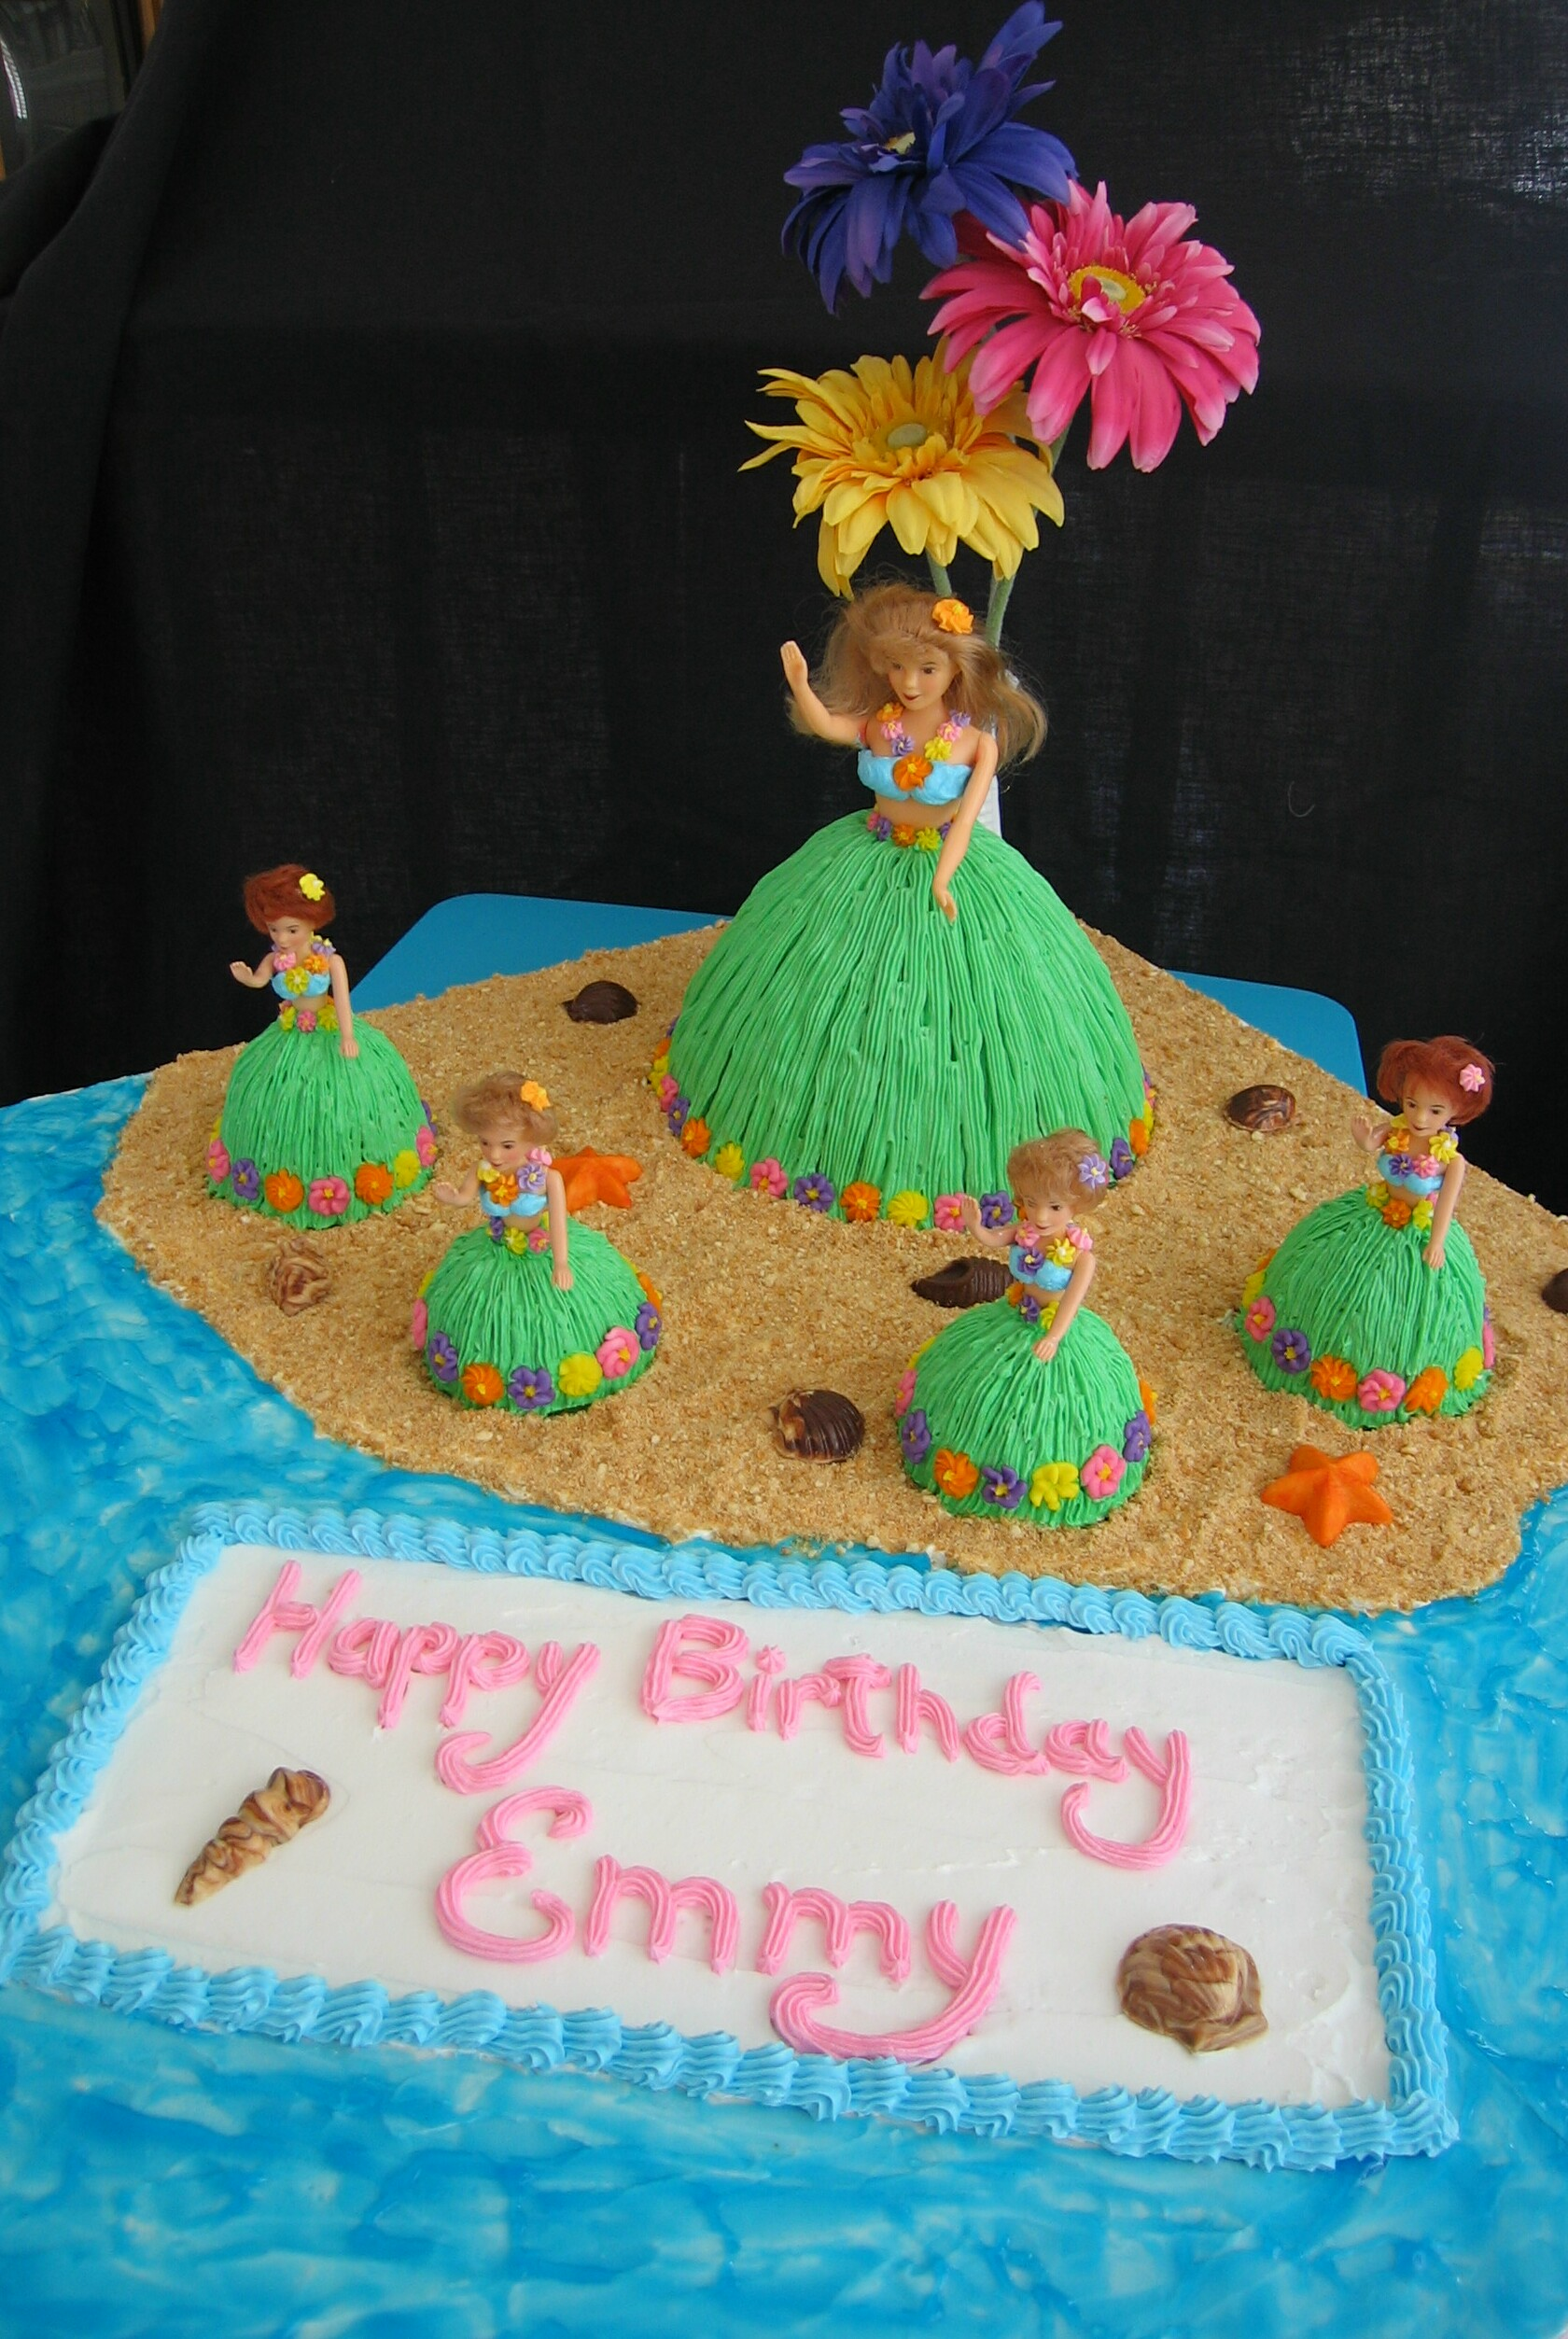 Hula Girl Cakes - Copy